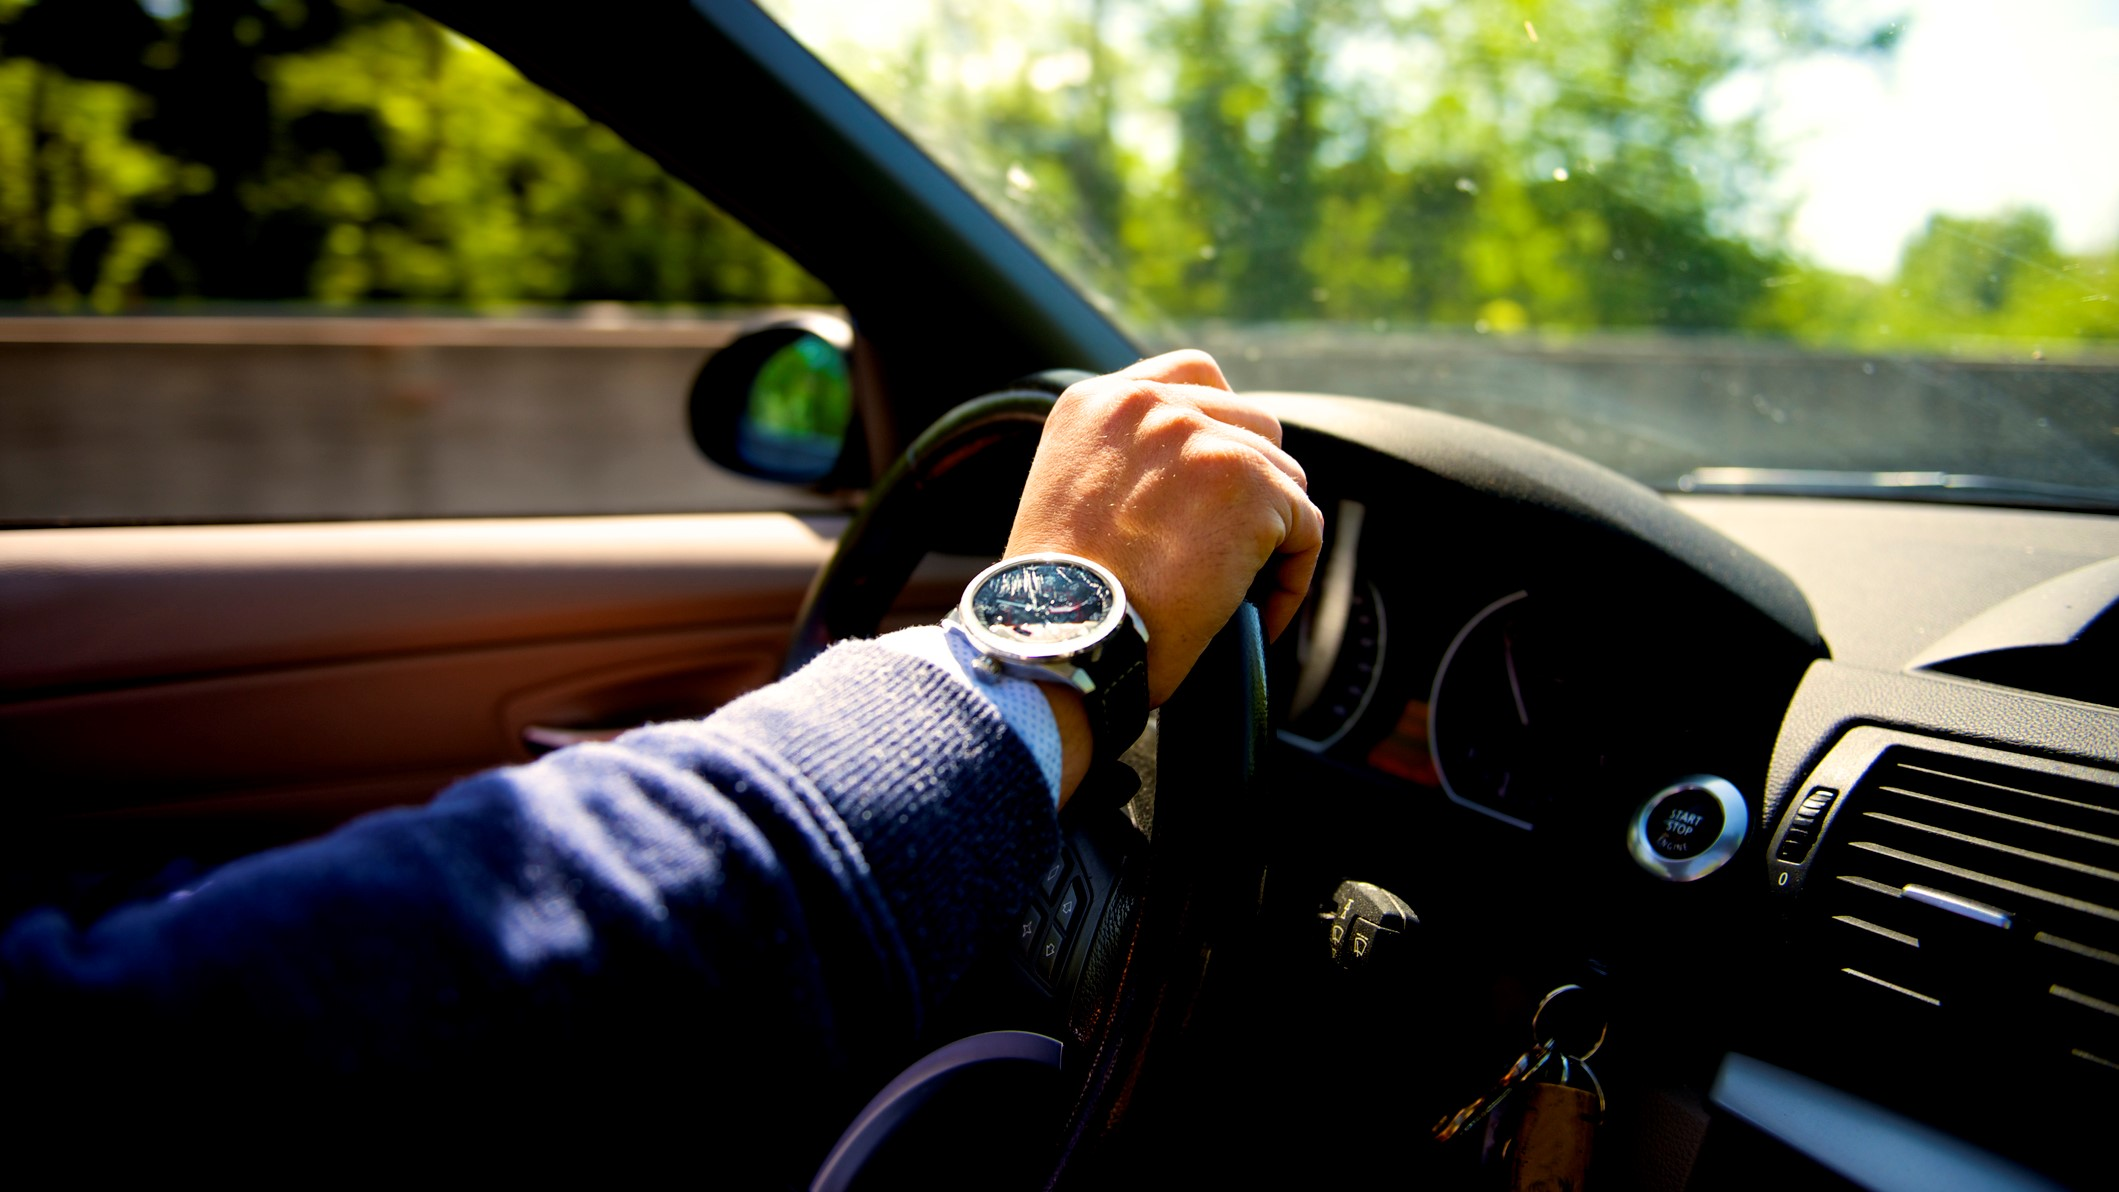 man with watches driving a car